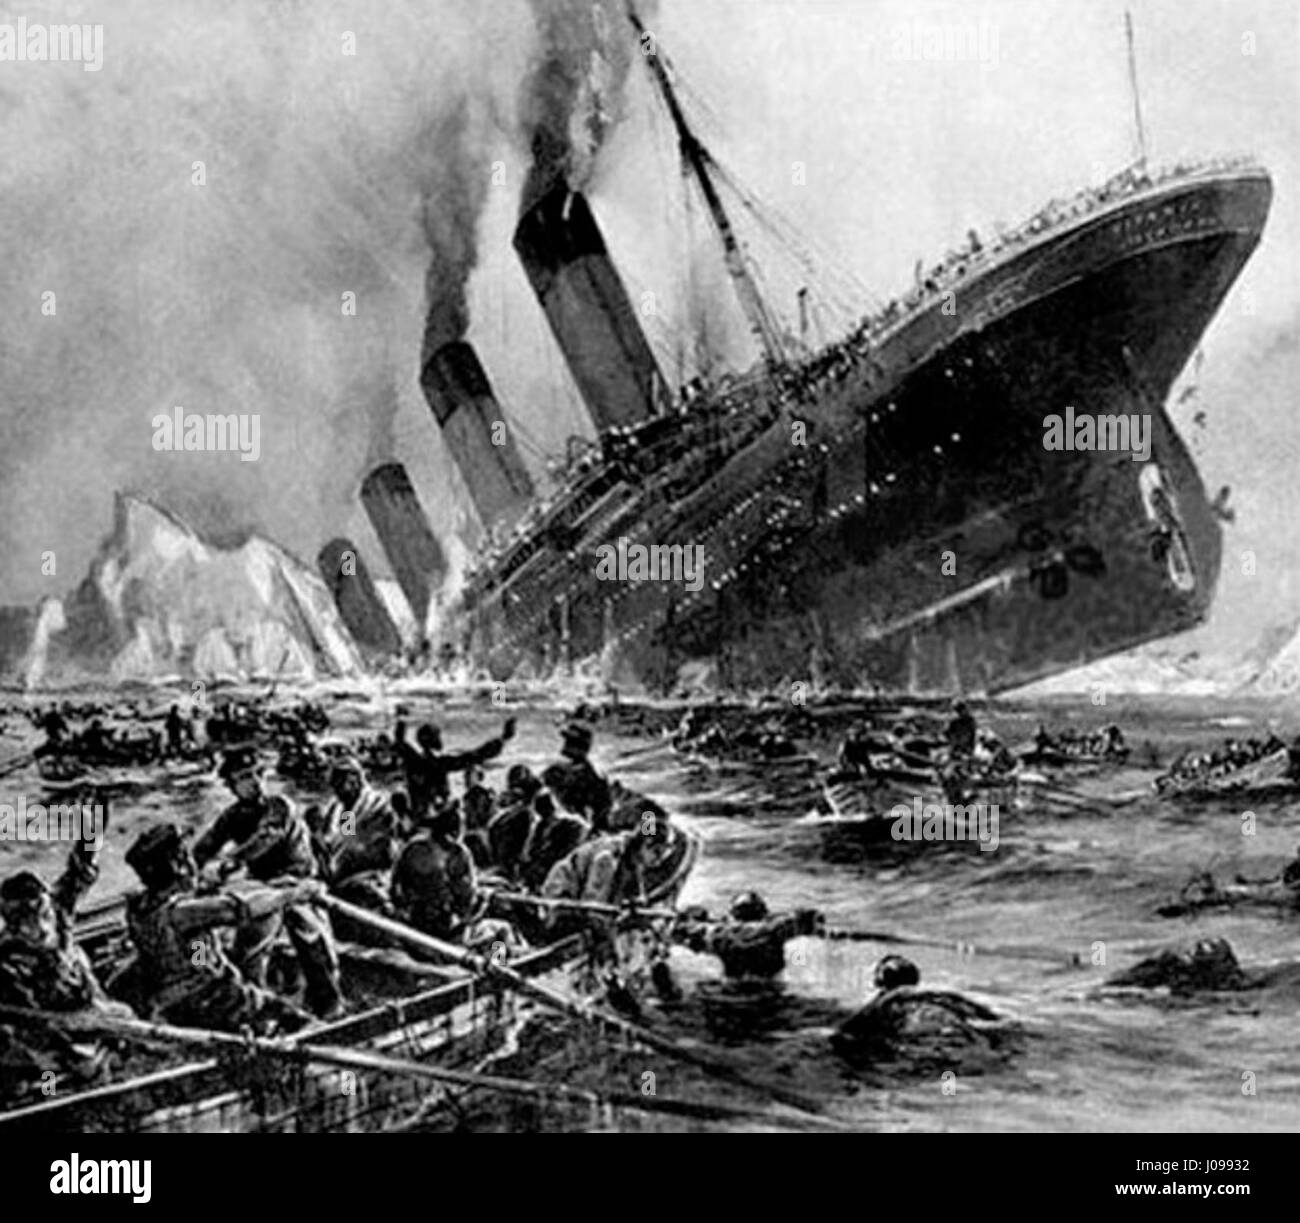 Titanic sinking, painting by Willy Stöwer - Stock Image